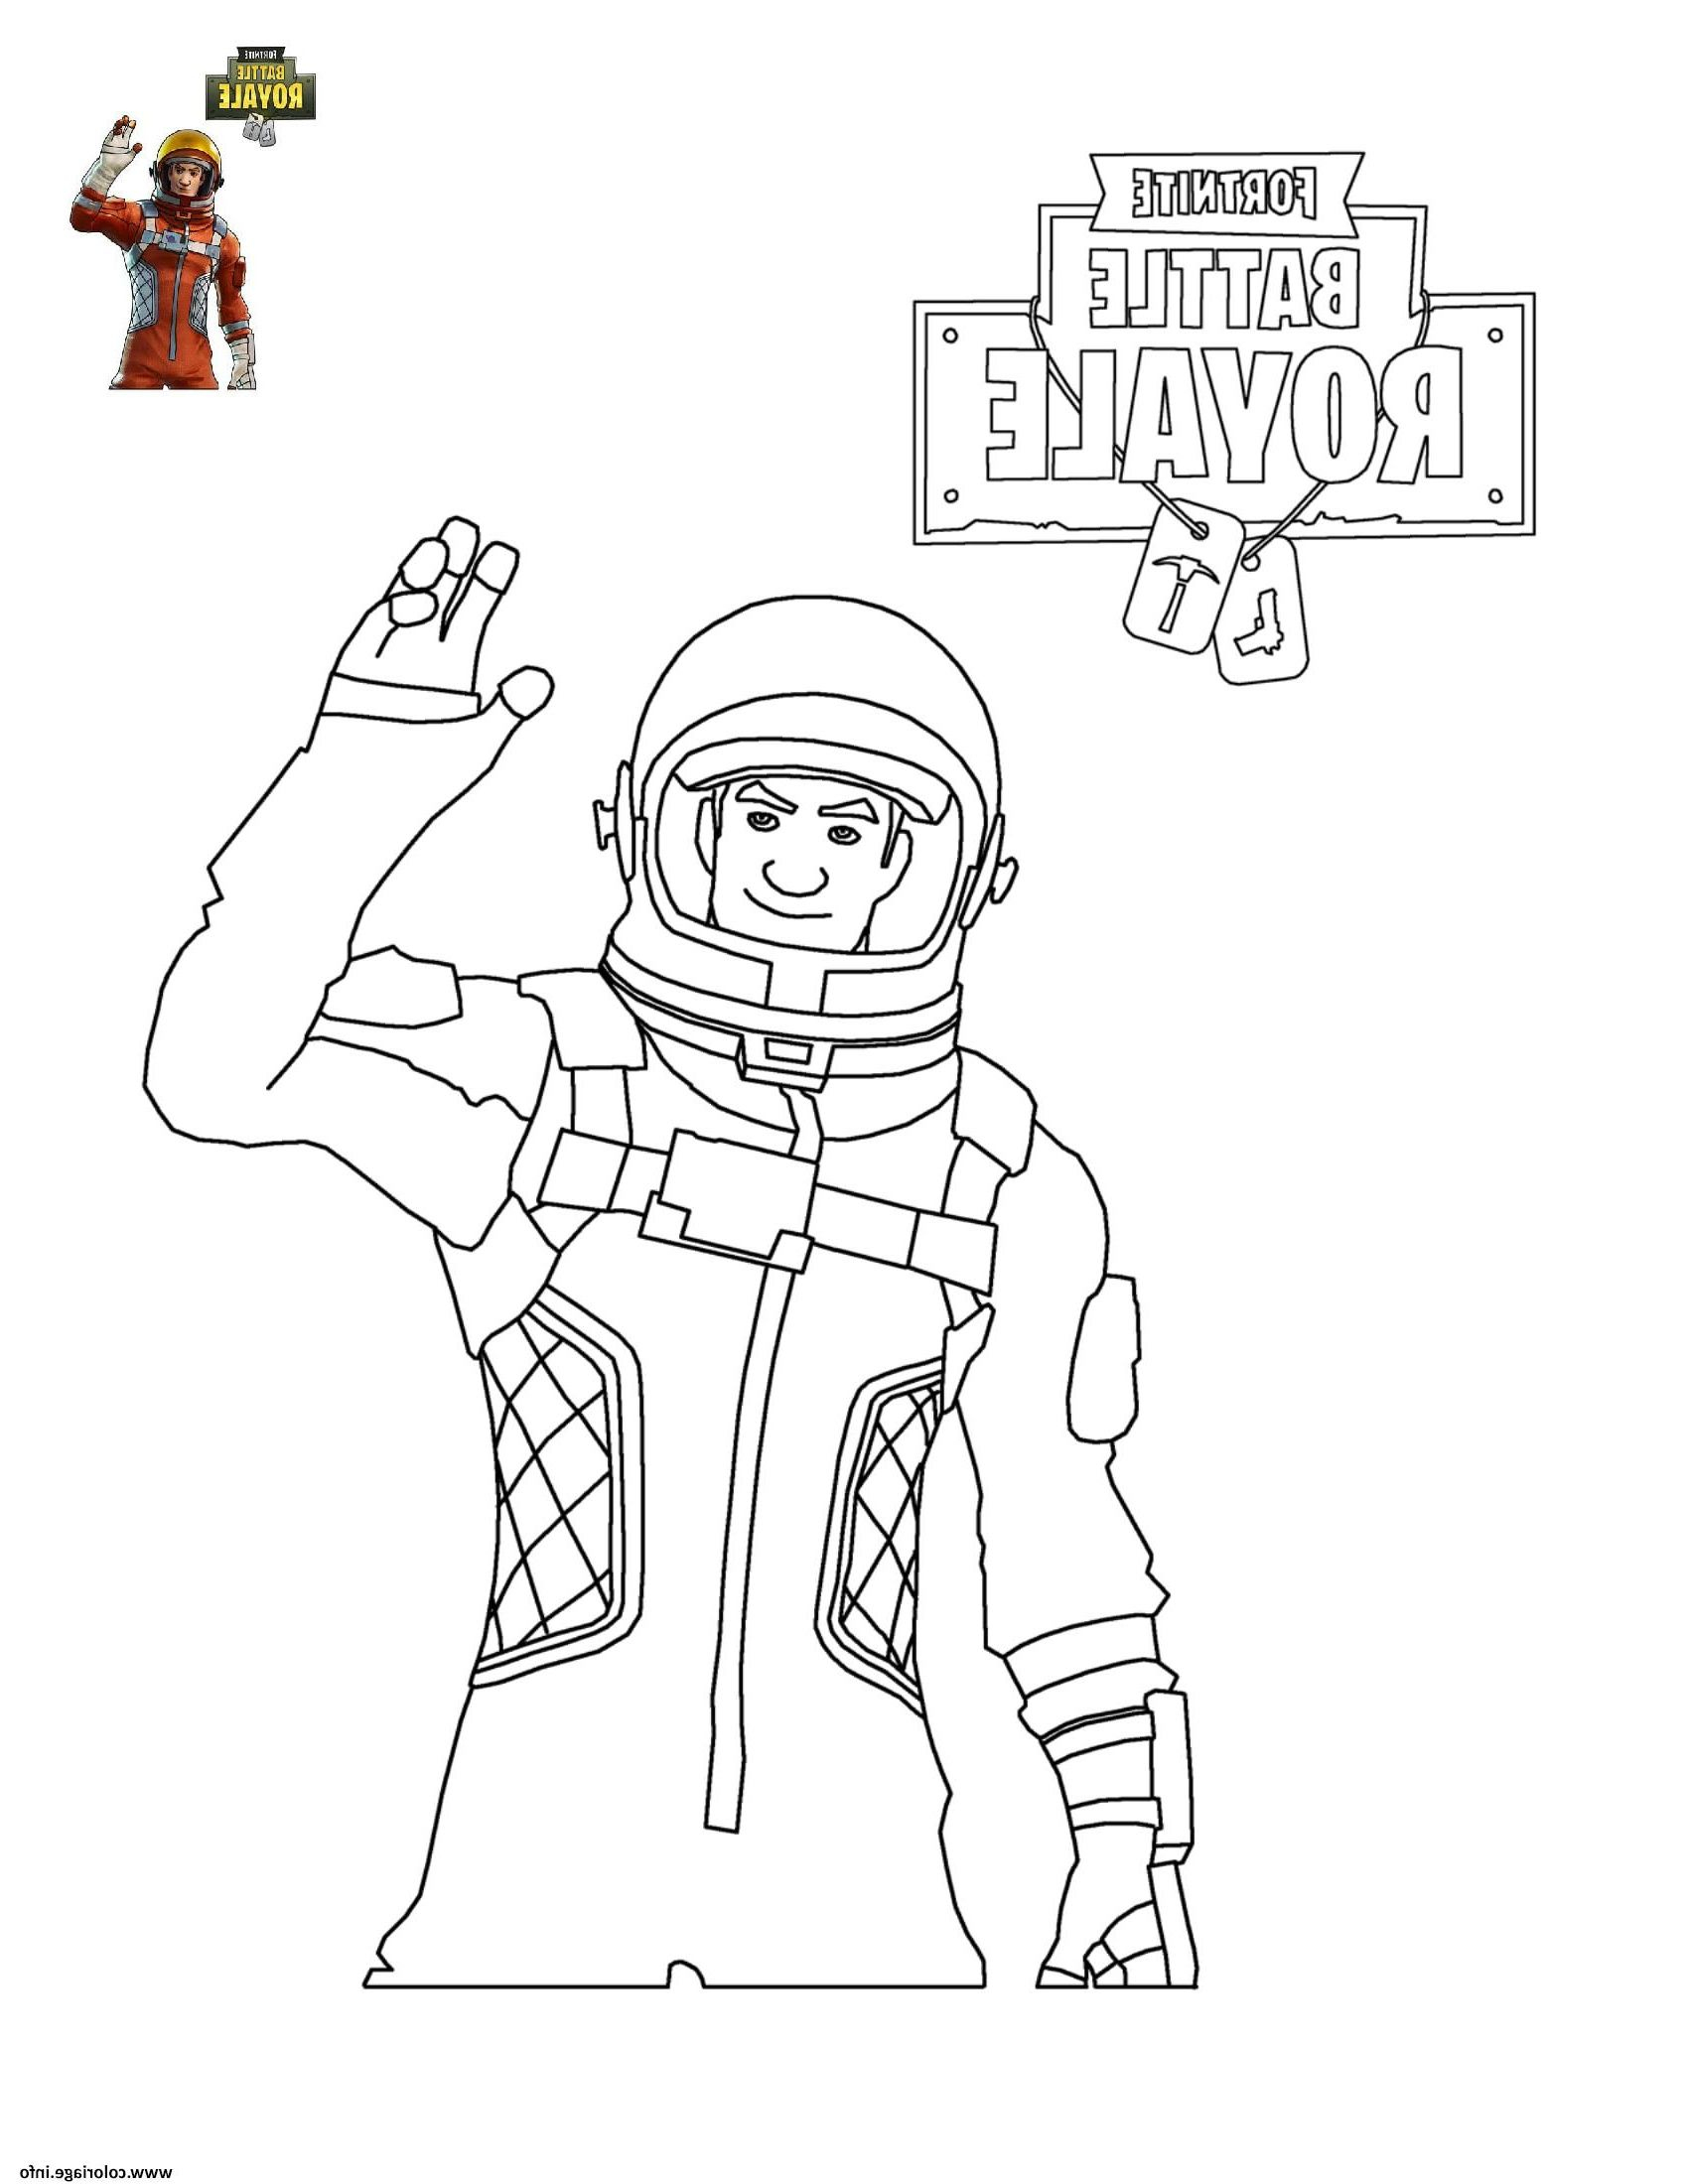 Coloriage Skin Fortnite . 11 Loisirs Coloriage Skin destiné Coloriage De Fortnite